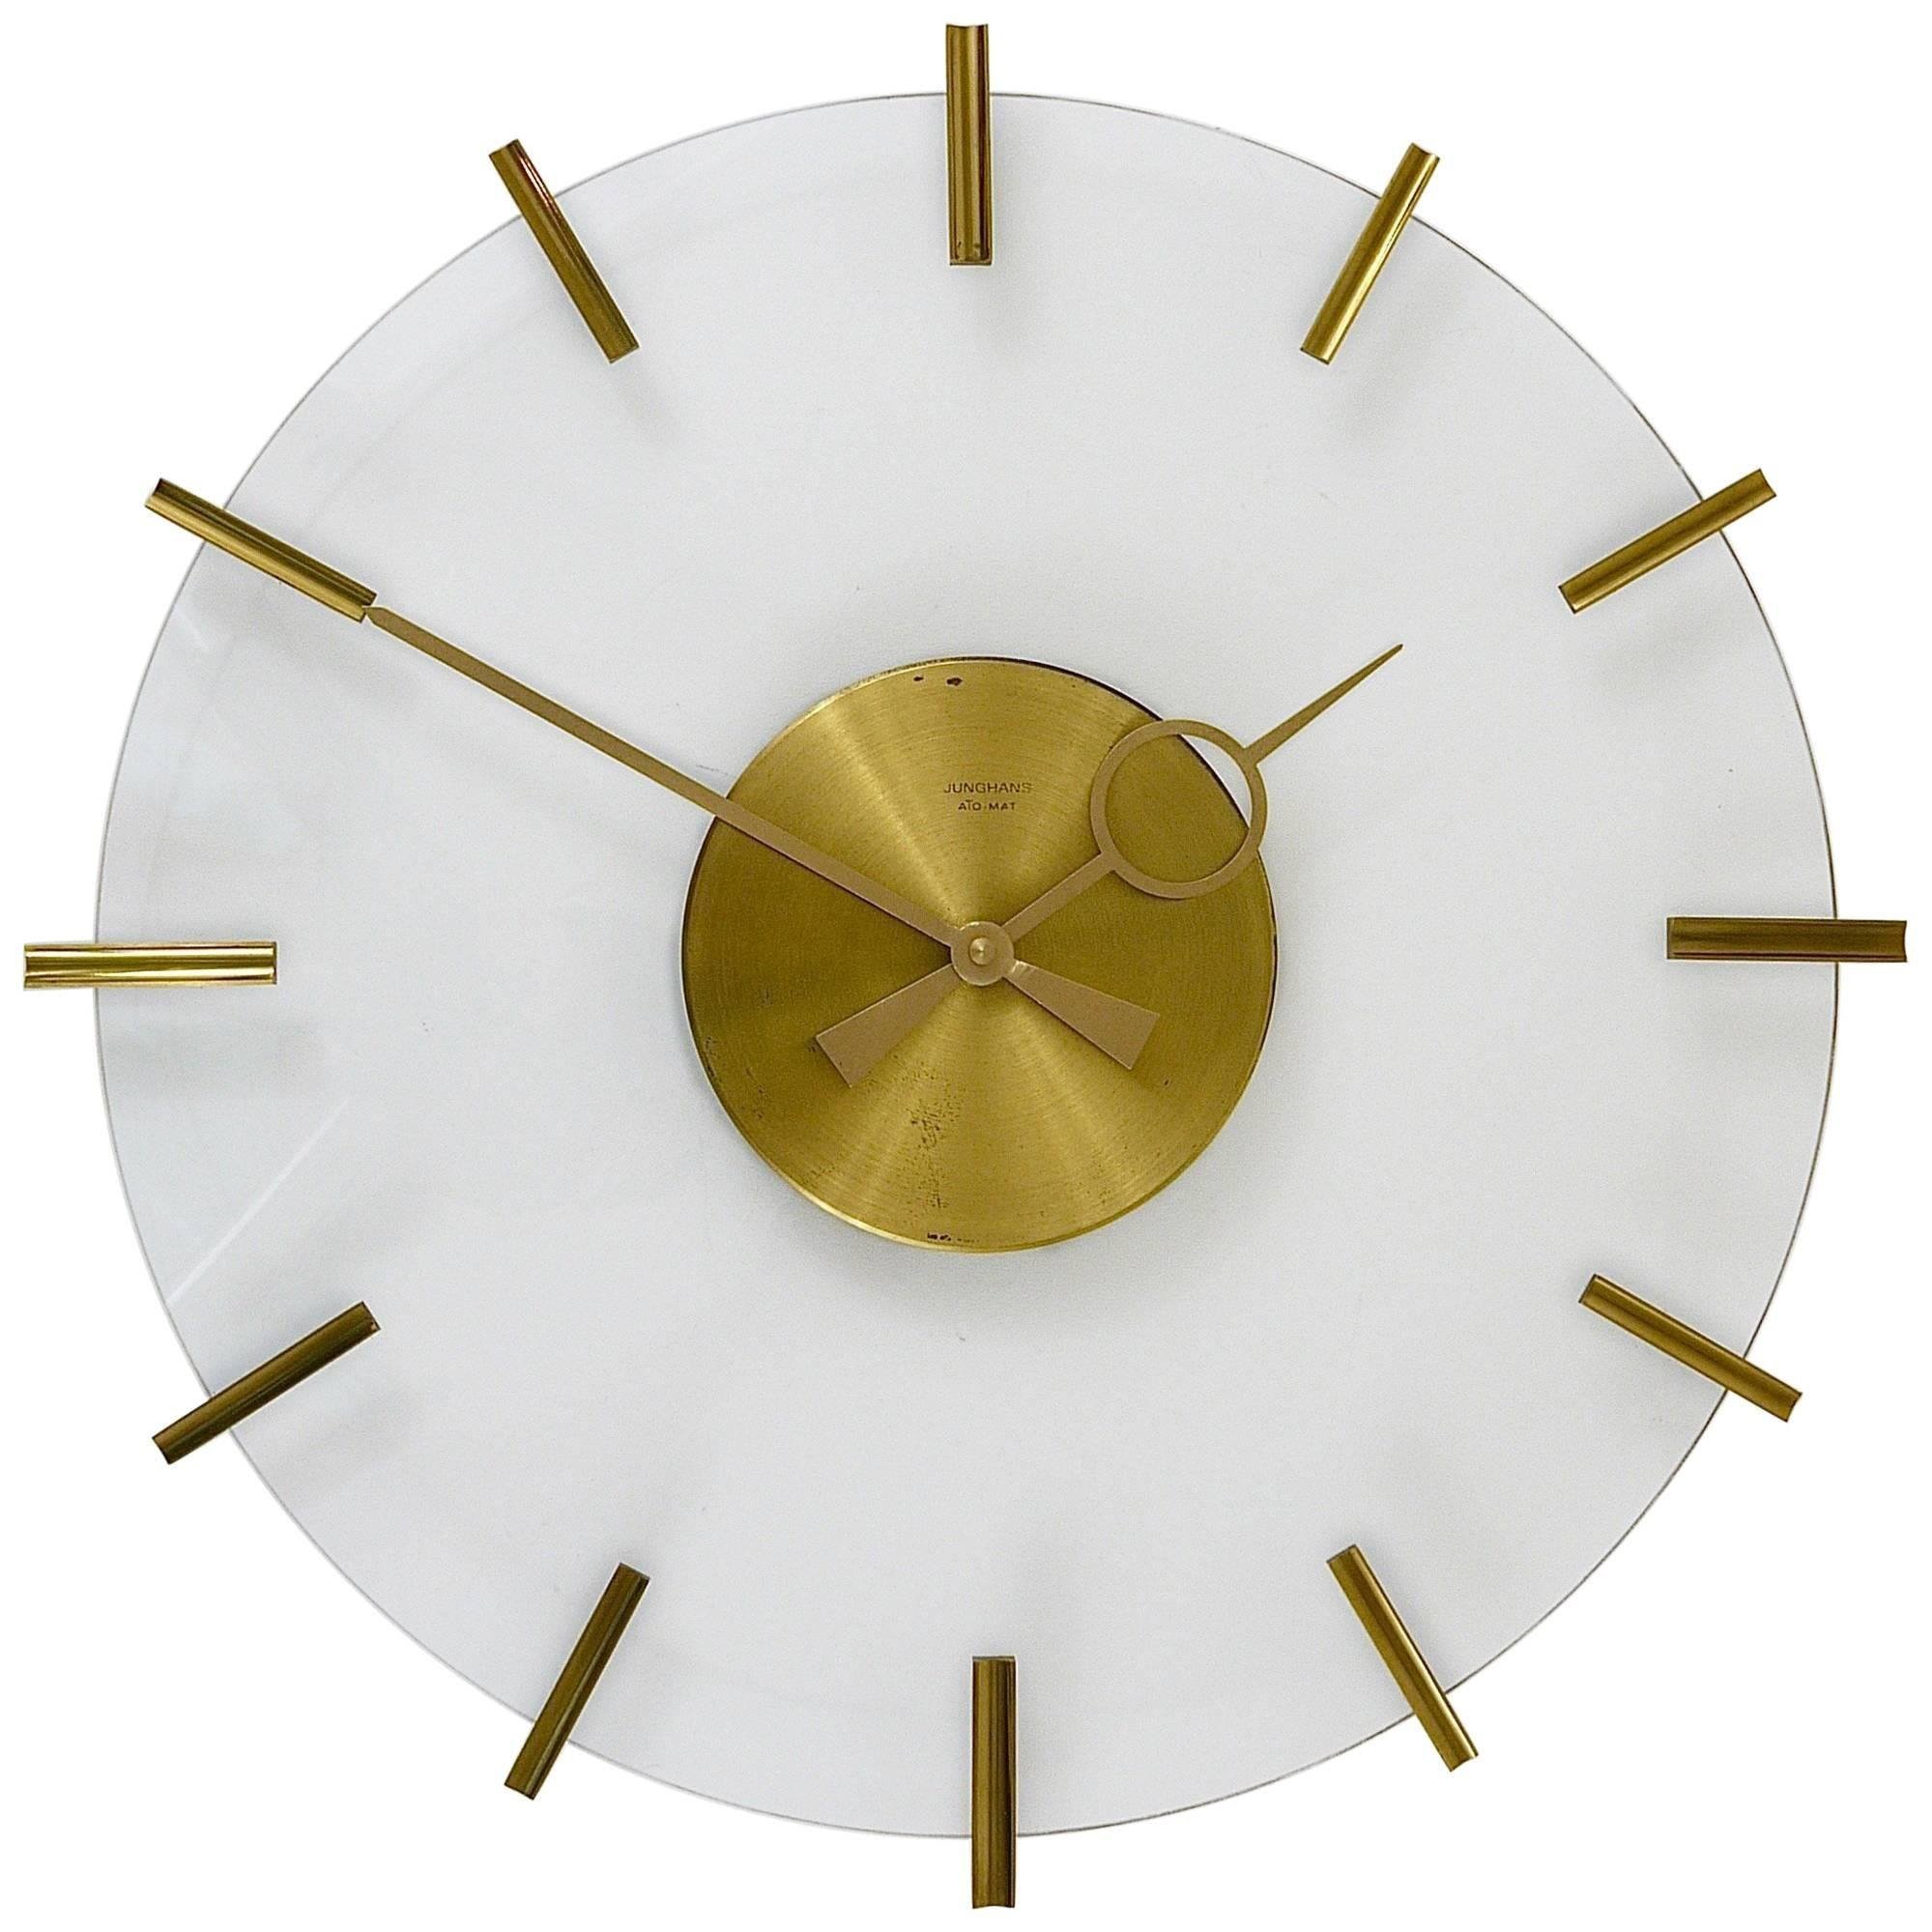 A Beautiful Mid-Century Striking Wall Clock by Junghans Germany ...